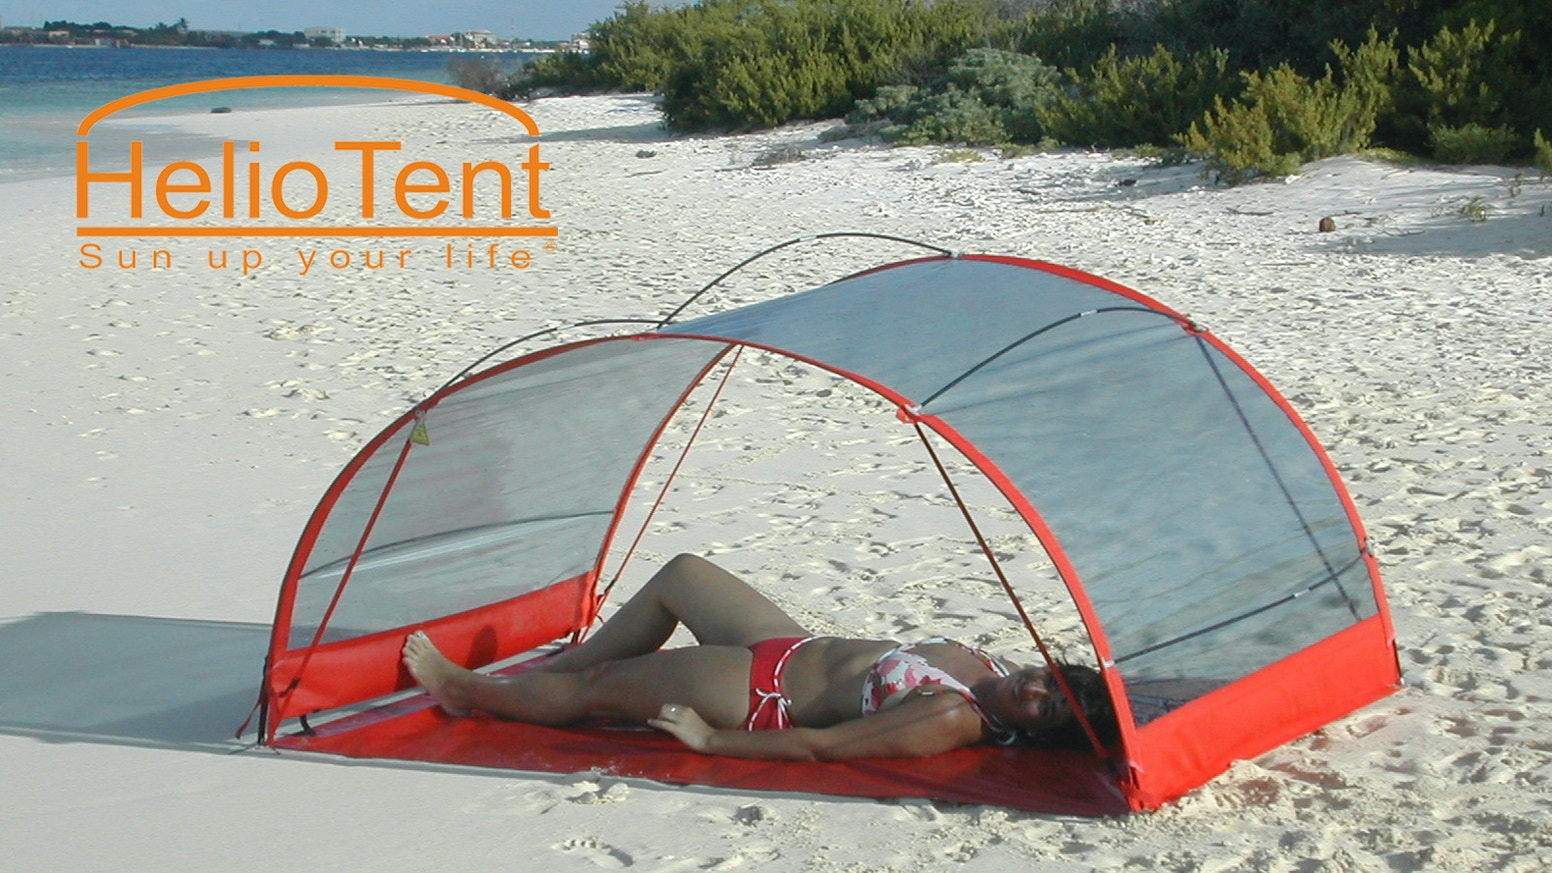 HelioTent is the first and only product which filters out harmful sunrays while allowing the sun's healthy benefits shine through!